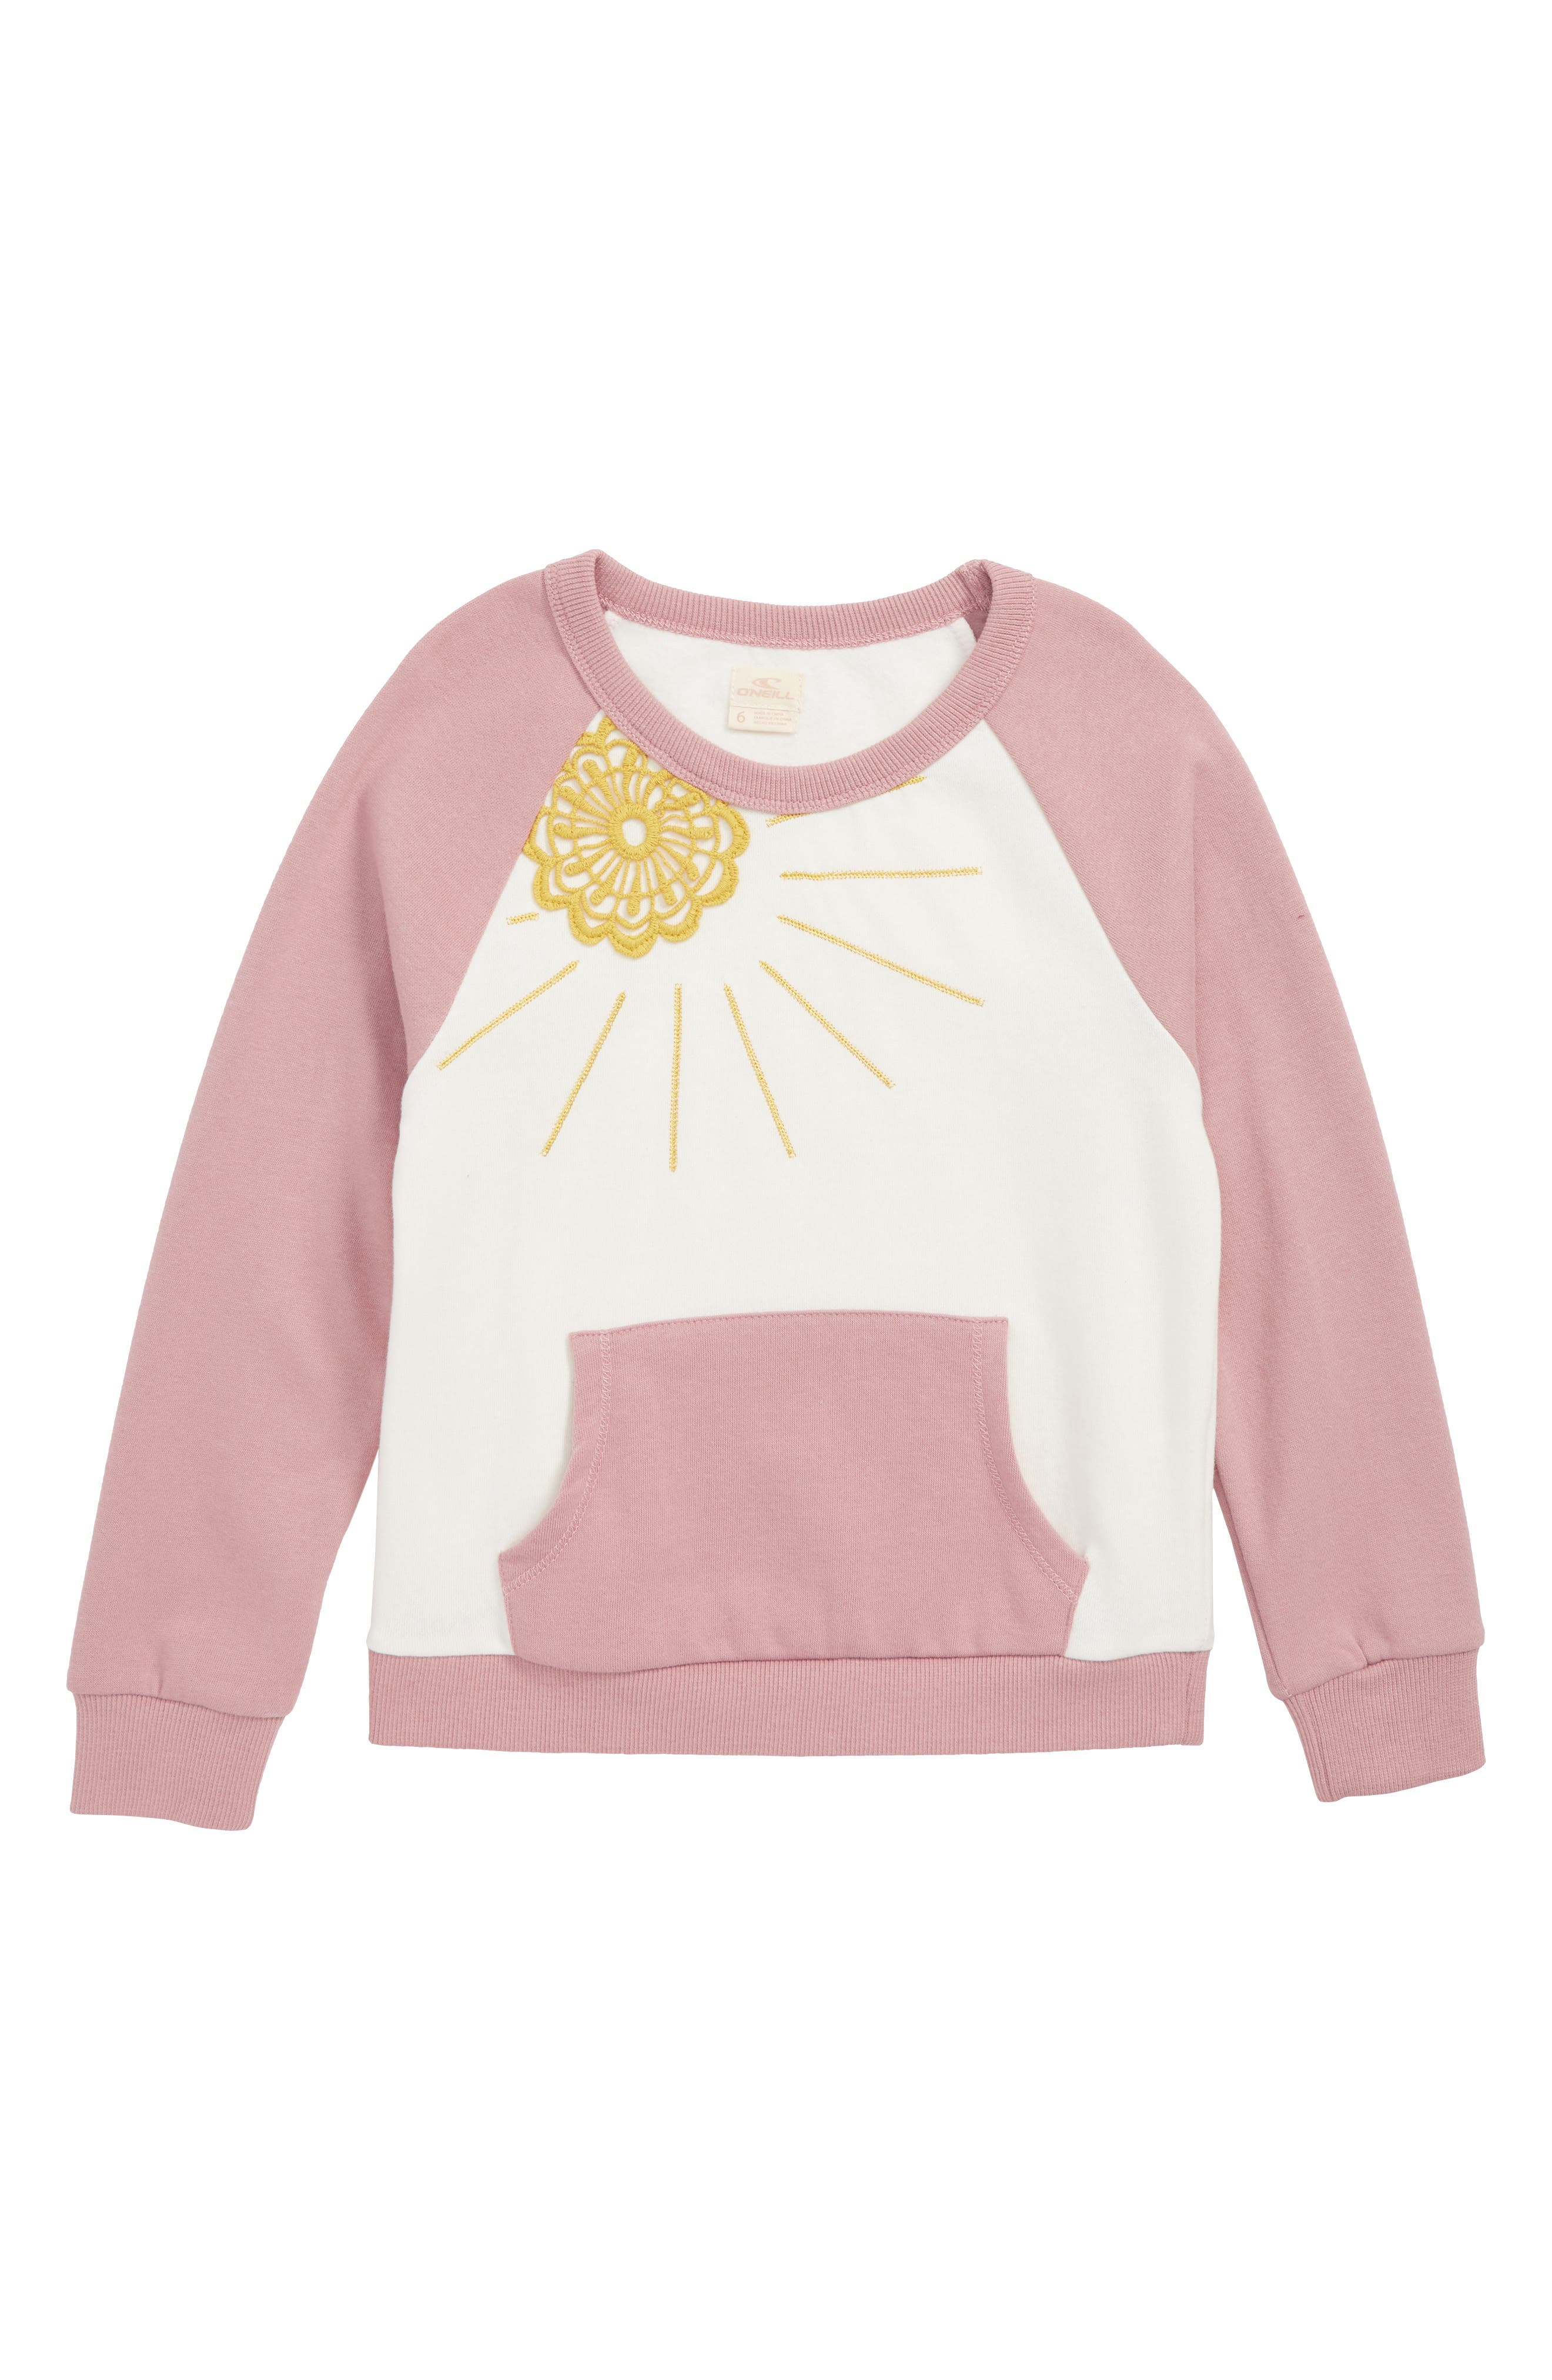 Sol Embroidered Sweatshirt,                         Main,                         color, 506